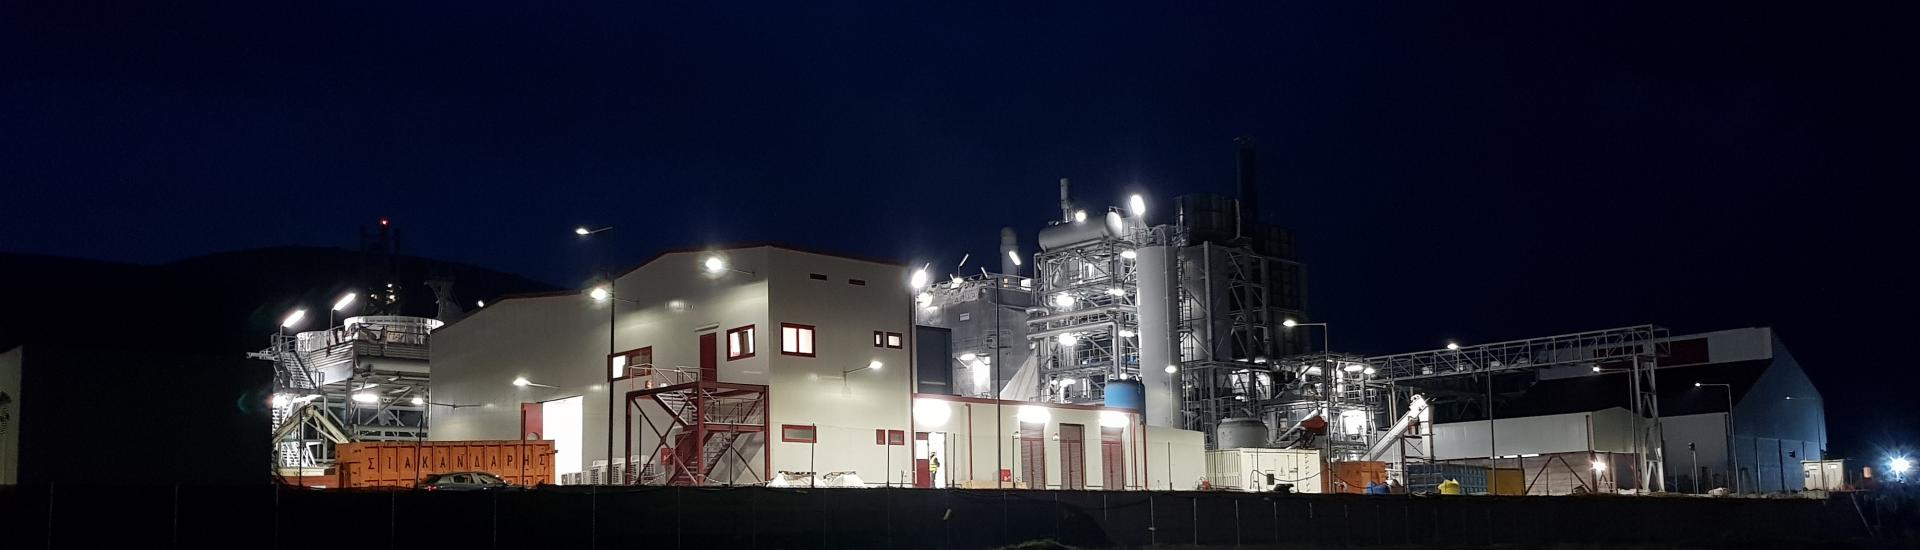 BIOMASS CHP POWER PLANT